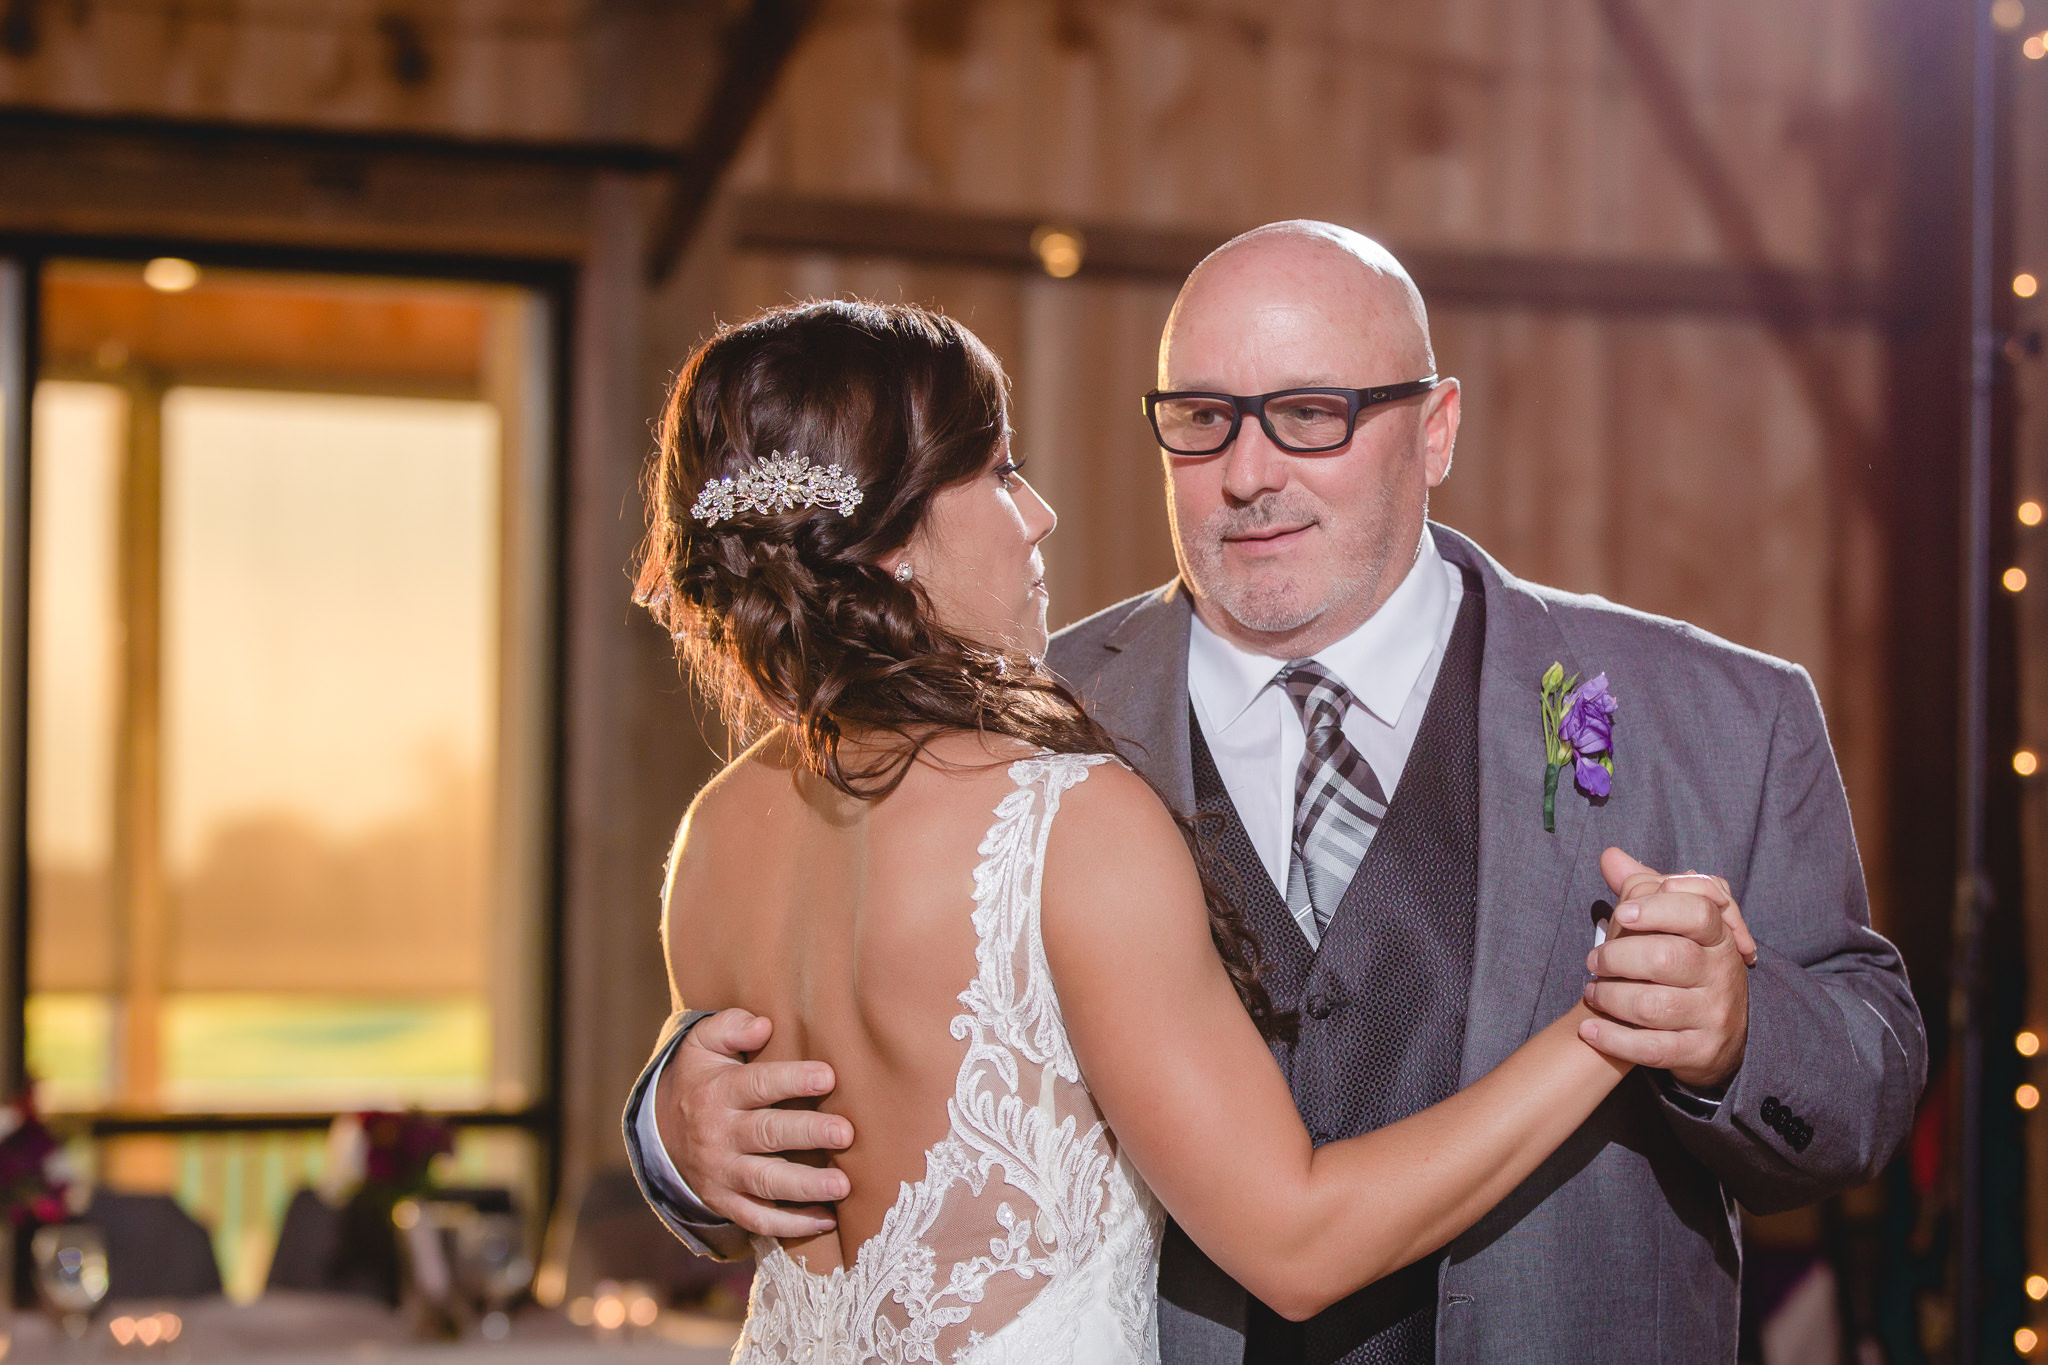 Father daughter dance at a White Barn wedding reception